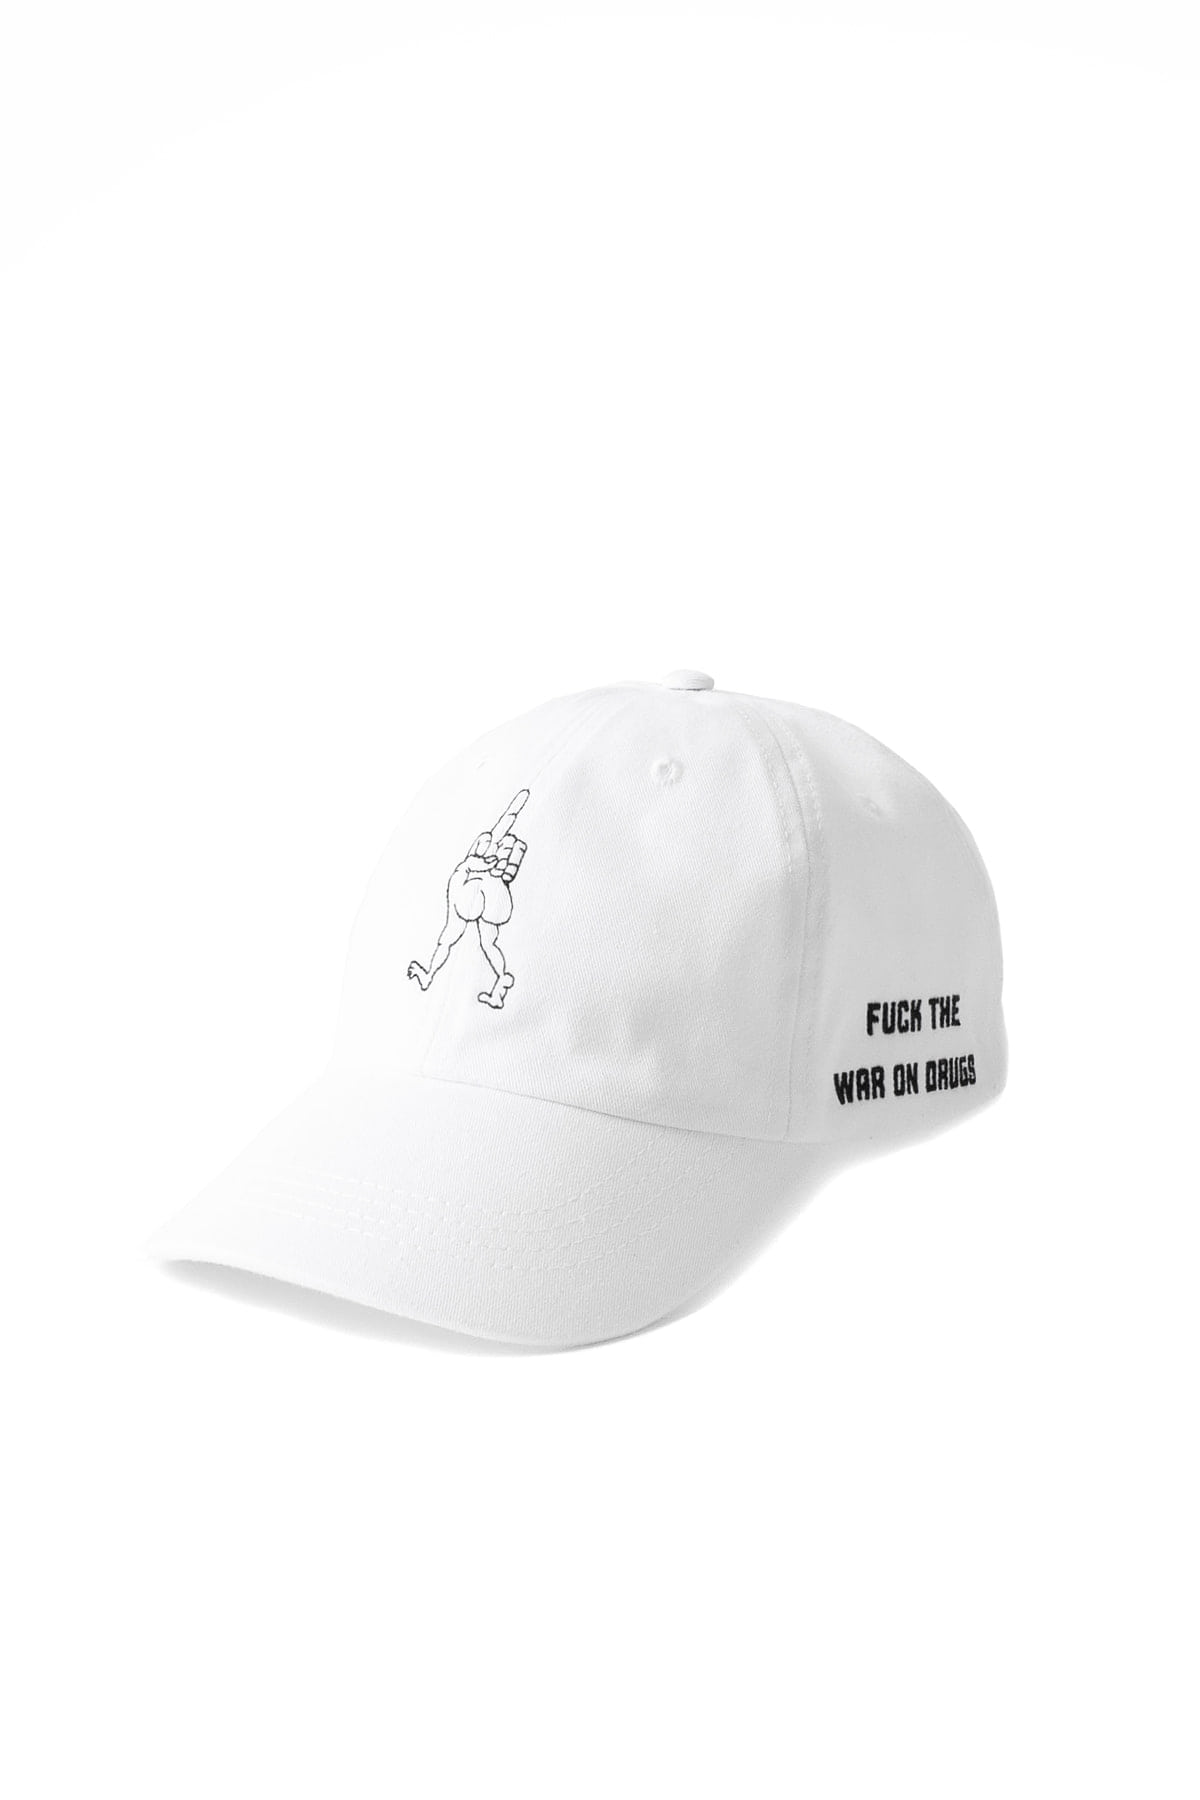 Soulland : Baseball Cap (White)